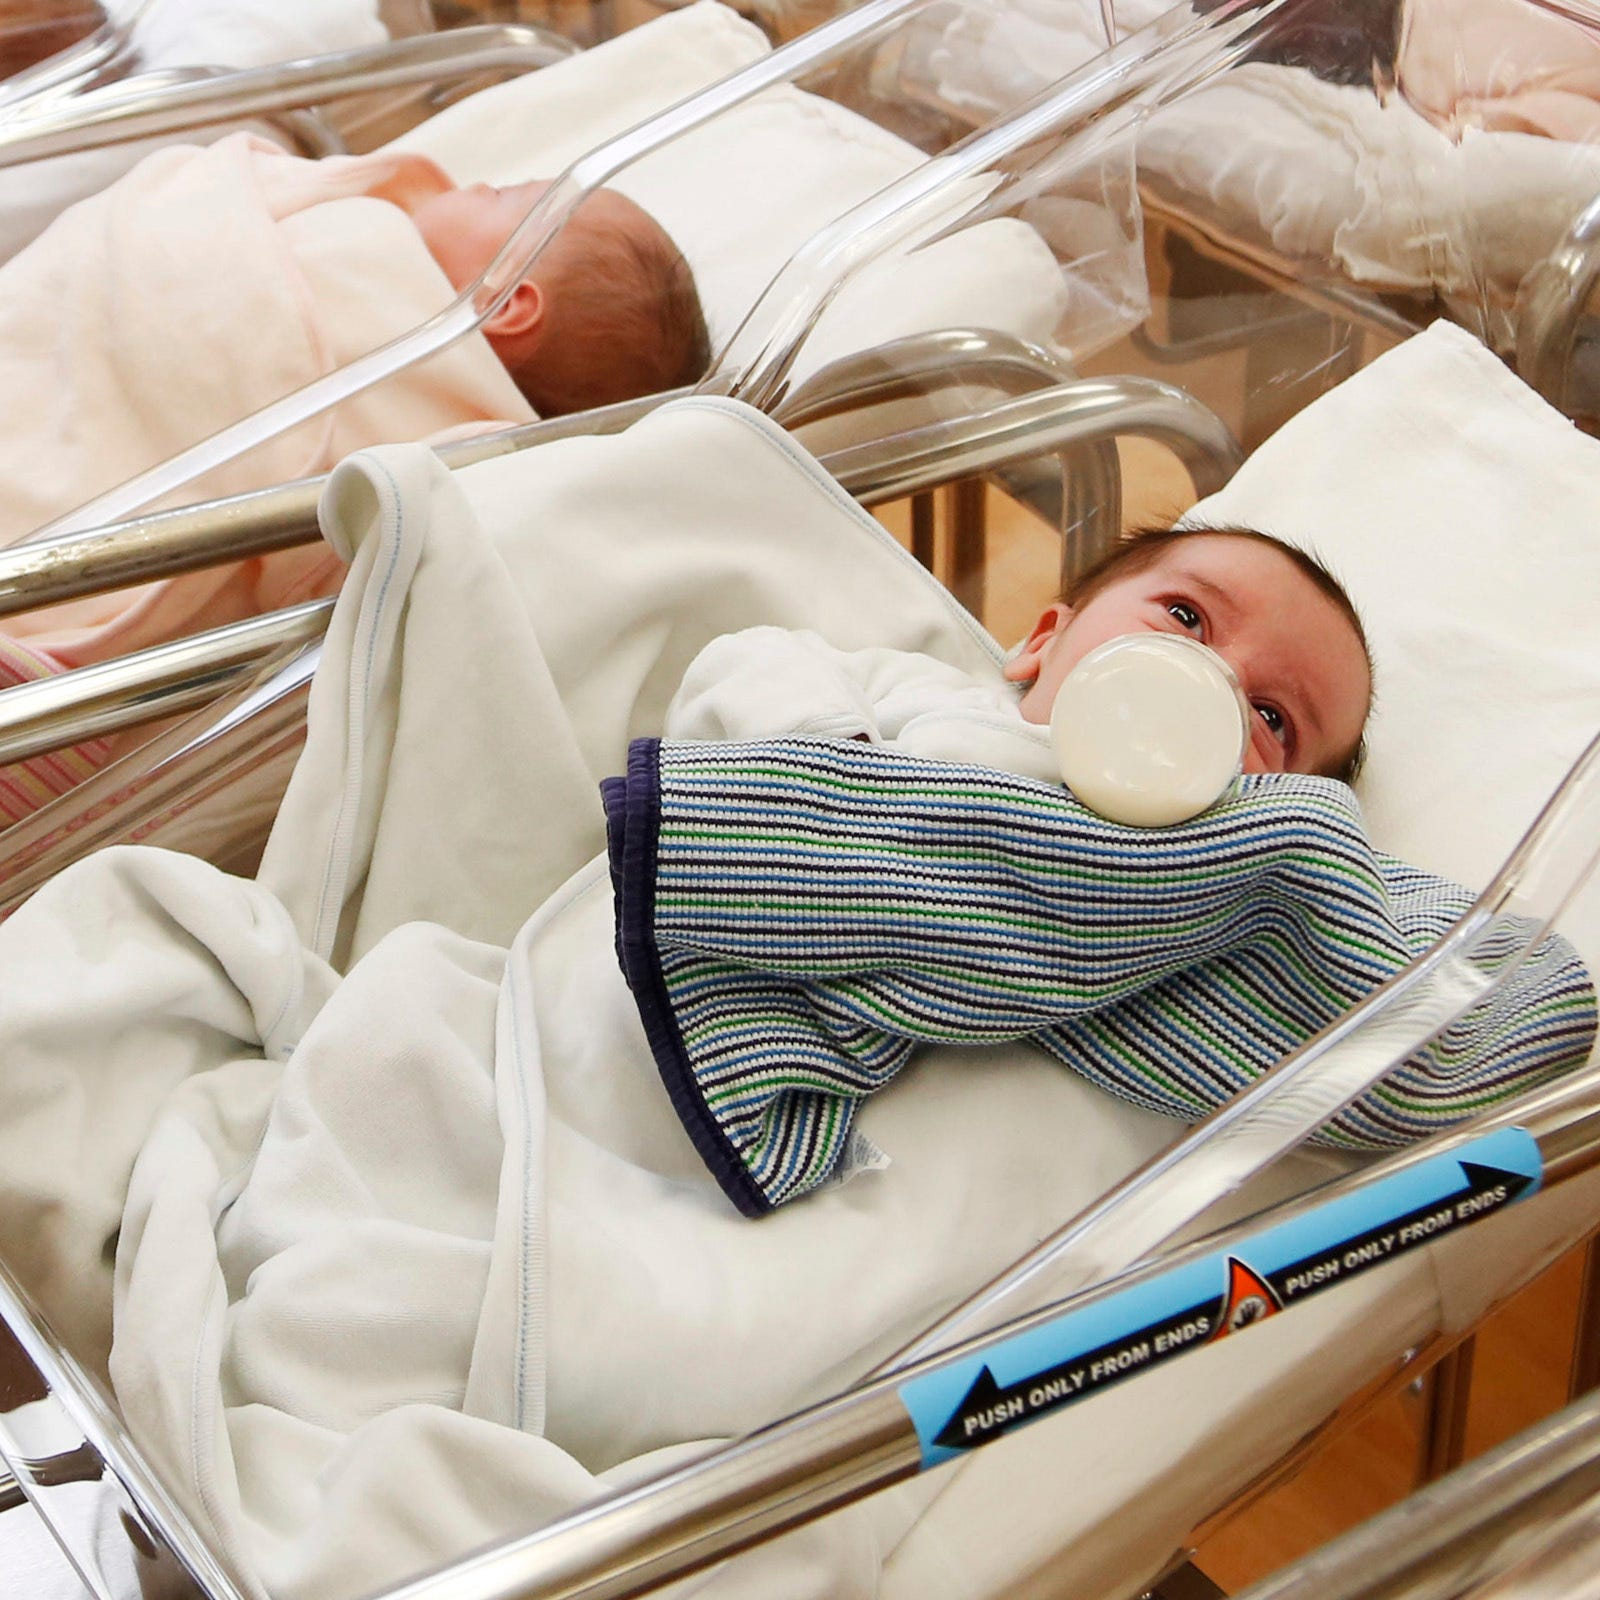 U.S. birth rate continues to fall